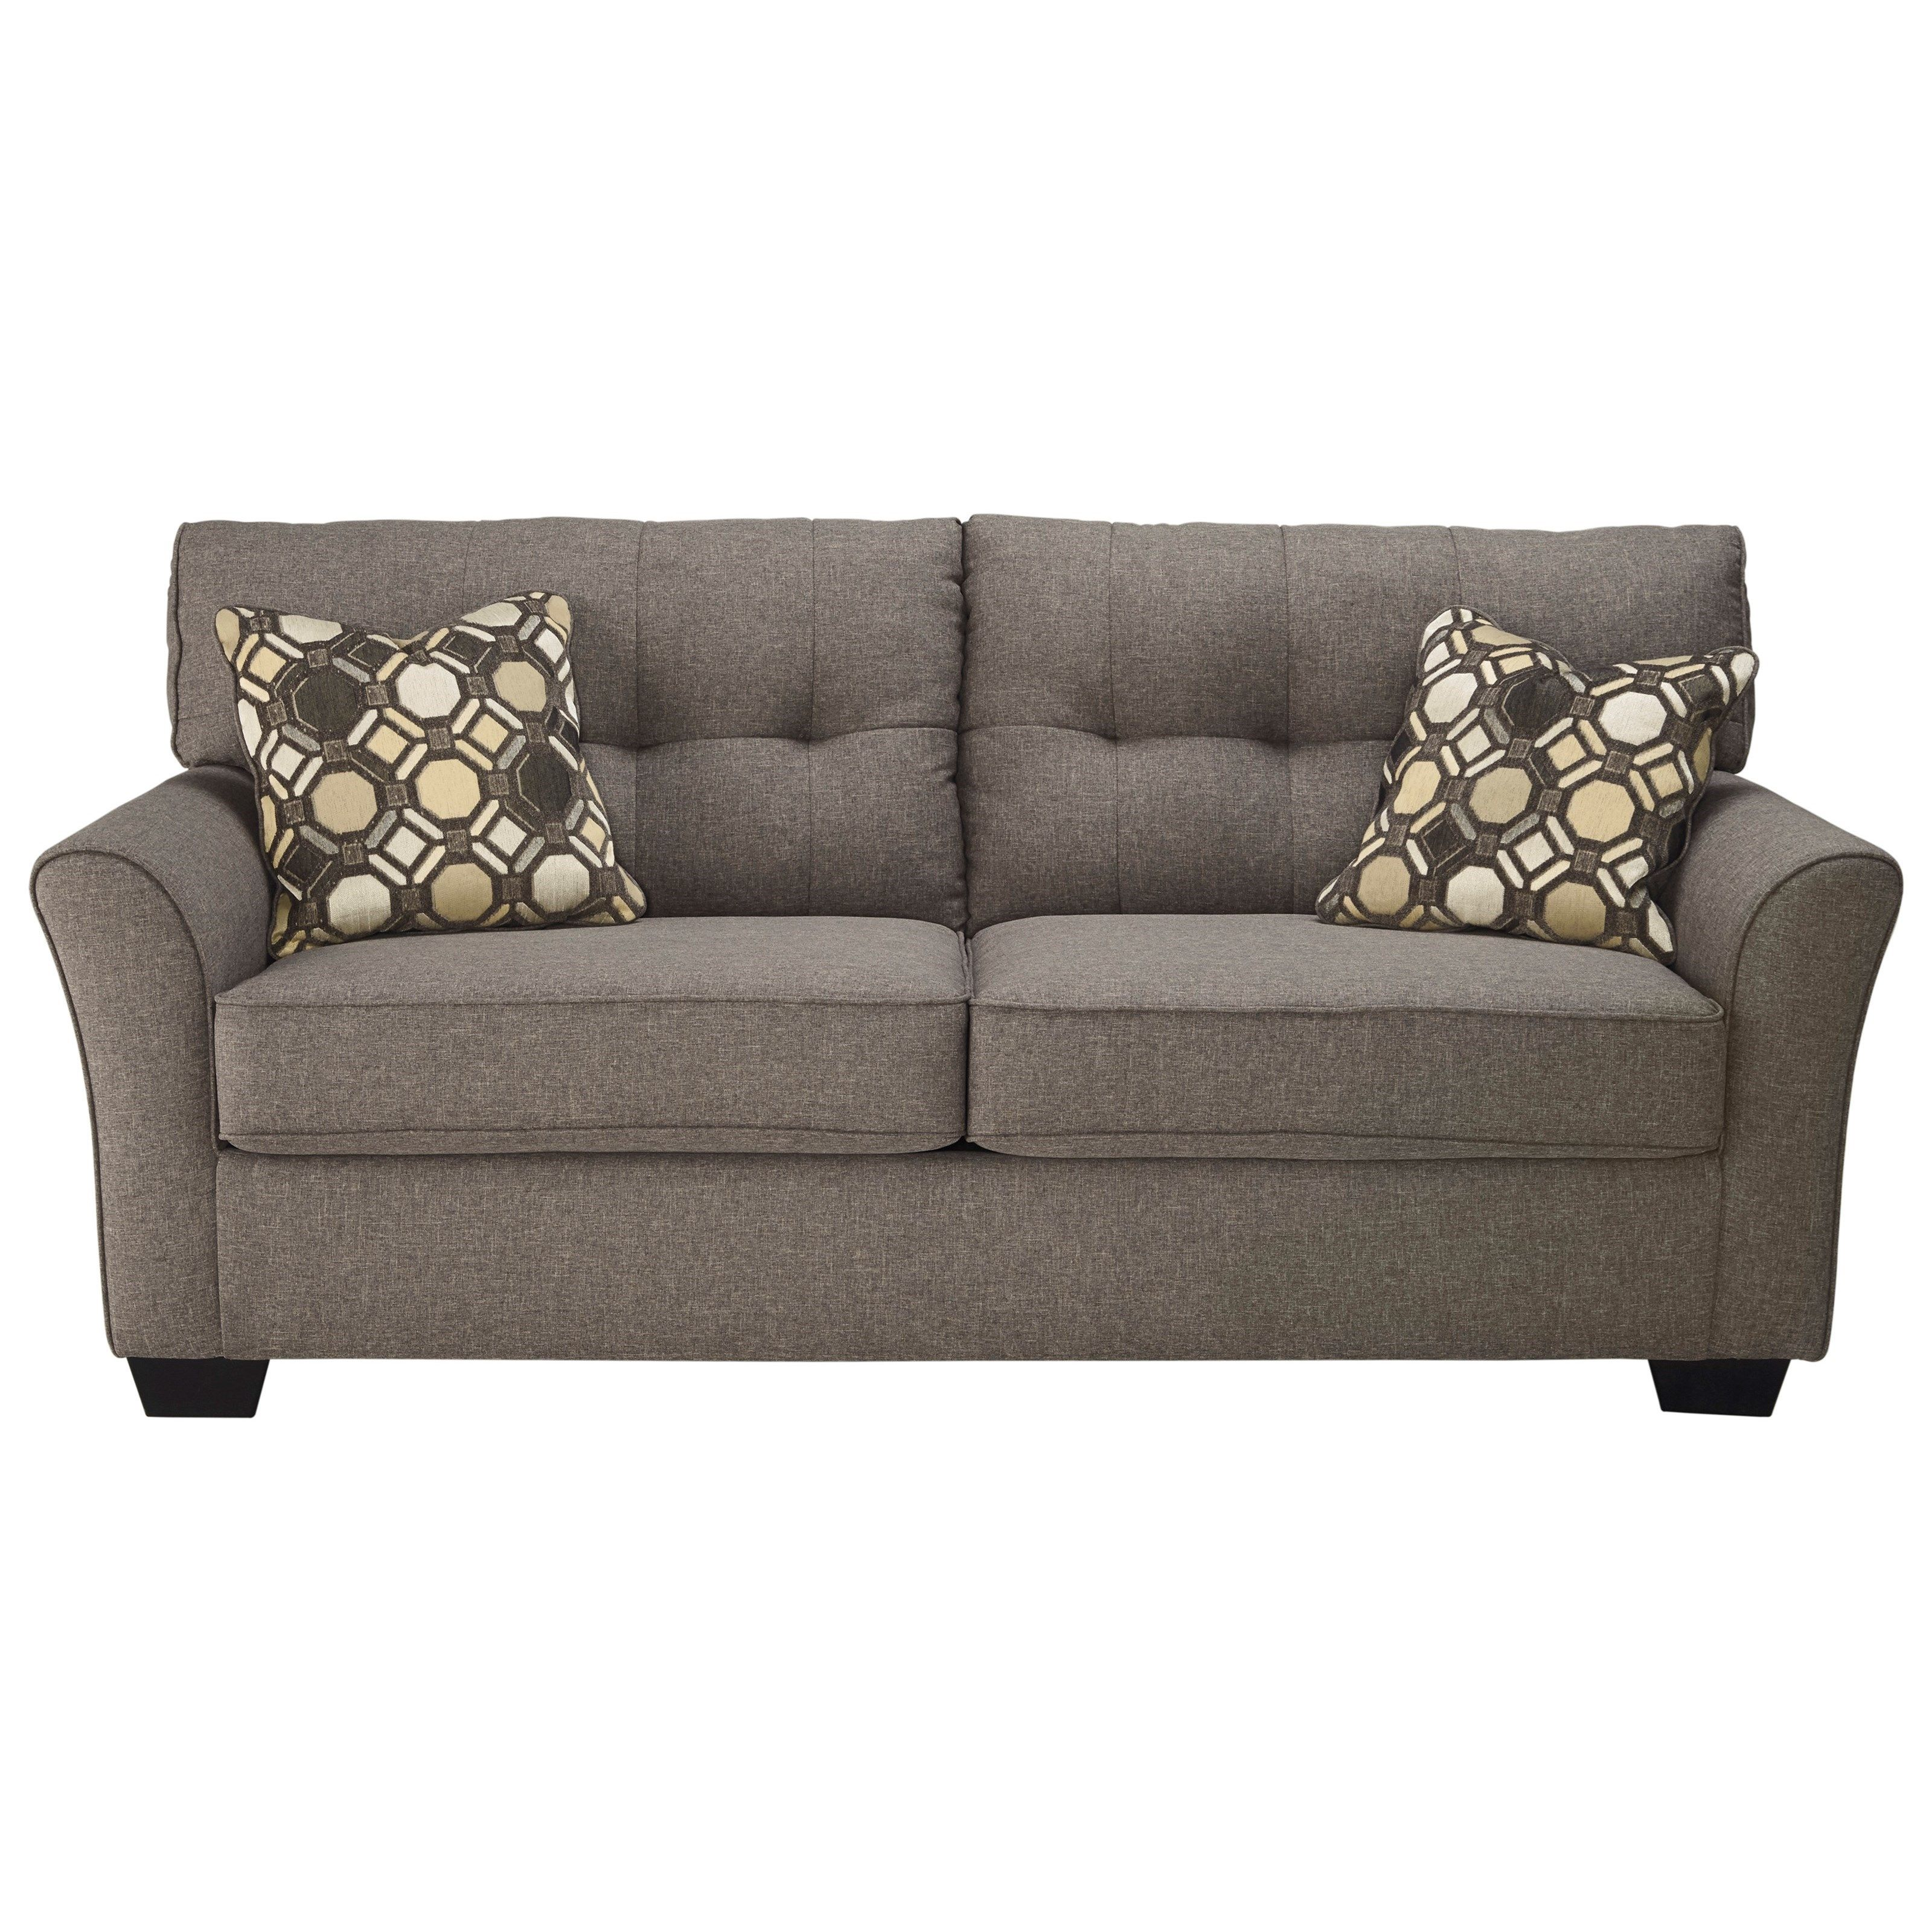 Heathered Gray Fabric Sets A Sophisticated Tone For This Sofa At 78 Inches Wide Its Moderate Scale Works Well In Smaller Es